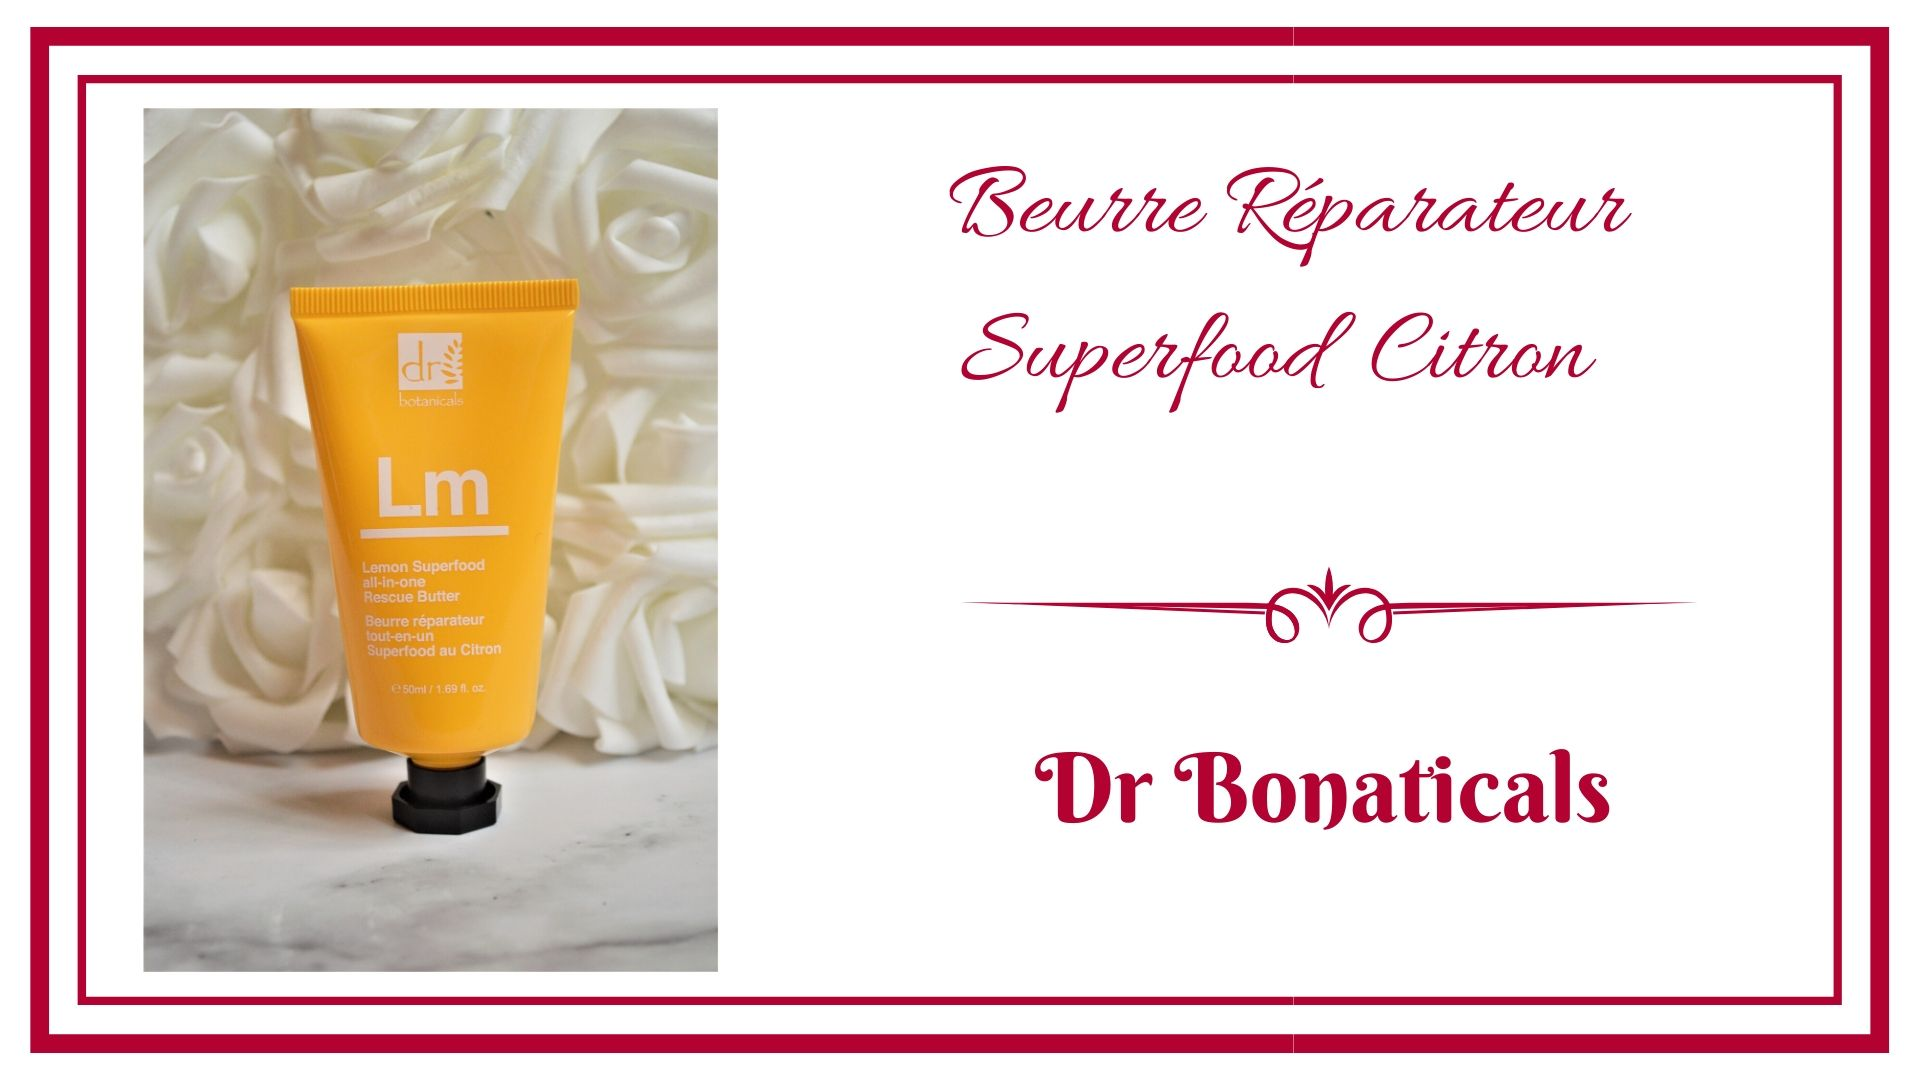 BEURRE RÉPARATEUR CITRON Superfood dr bonaticals